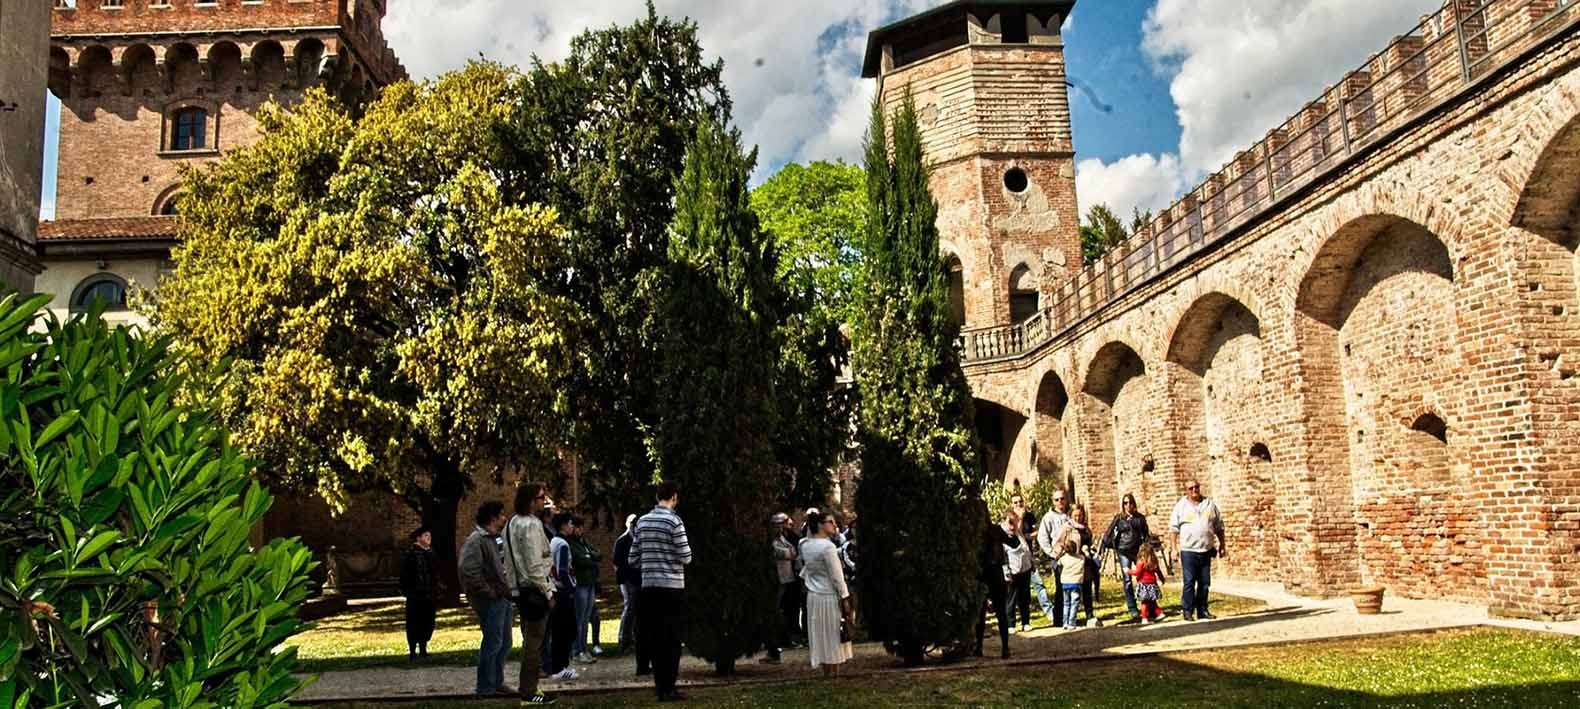 Castle Open Day - days filled with medieval castles, villages and mansions